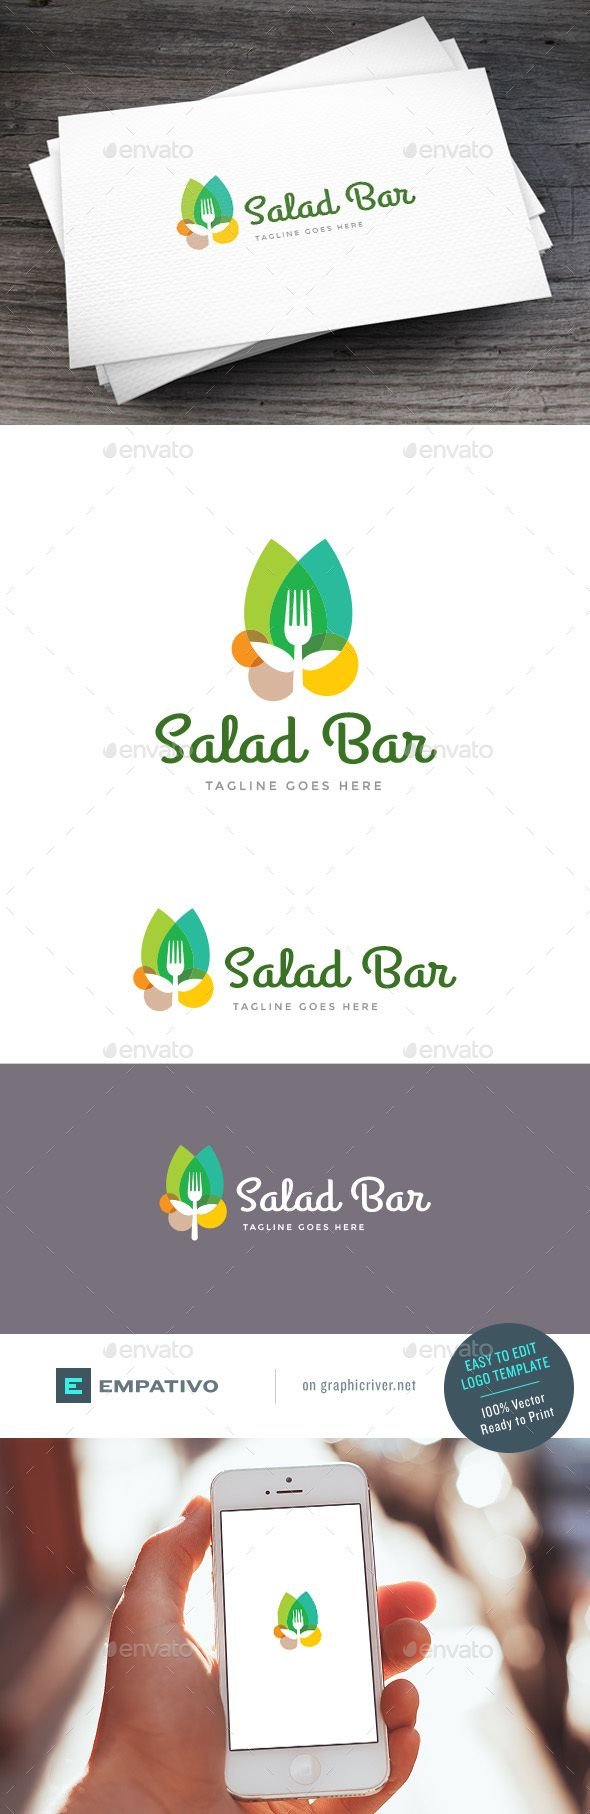 Salad Bar Logo Template - Food Logo Templates Download here : http://graphicriver.net/item/salad-bar-logo-template/15782770?s_rank=131&ref=Al-fatih